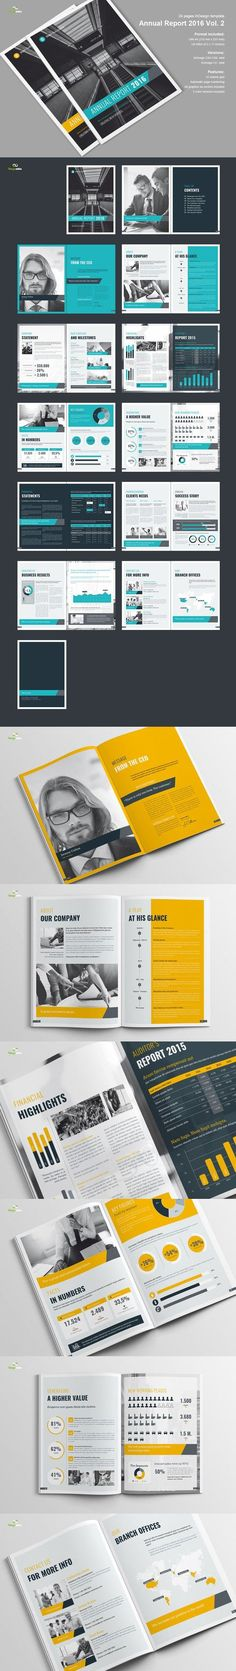 44 best nonprofit annual report design images on Pinterest Annual